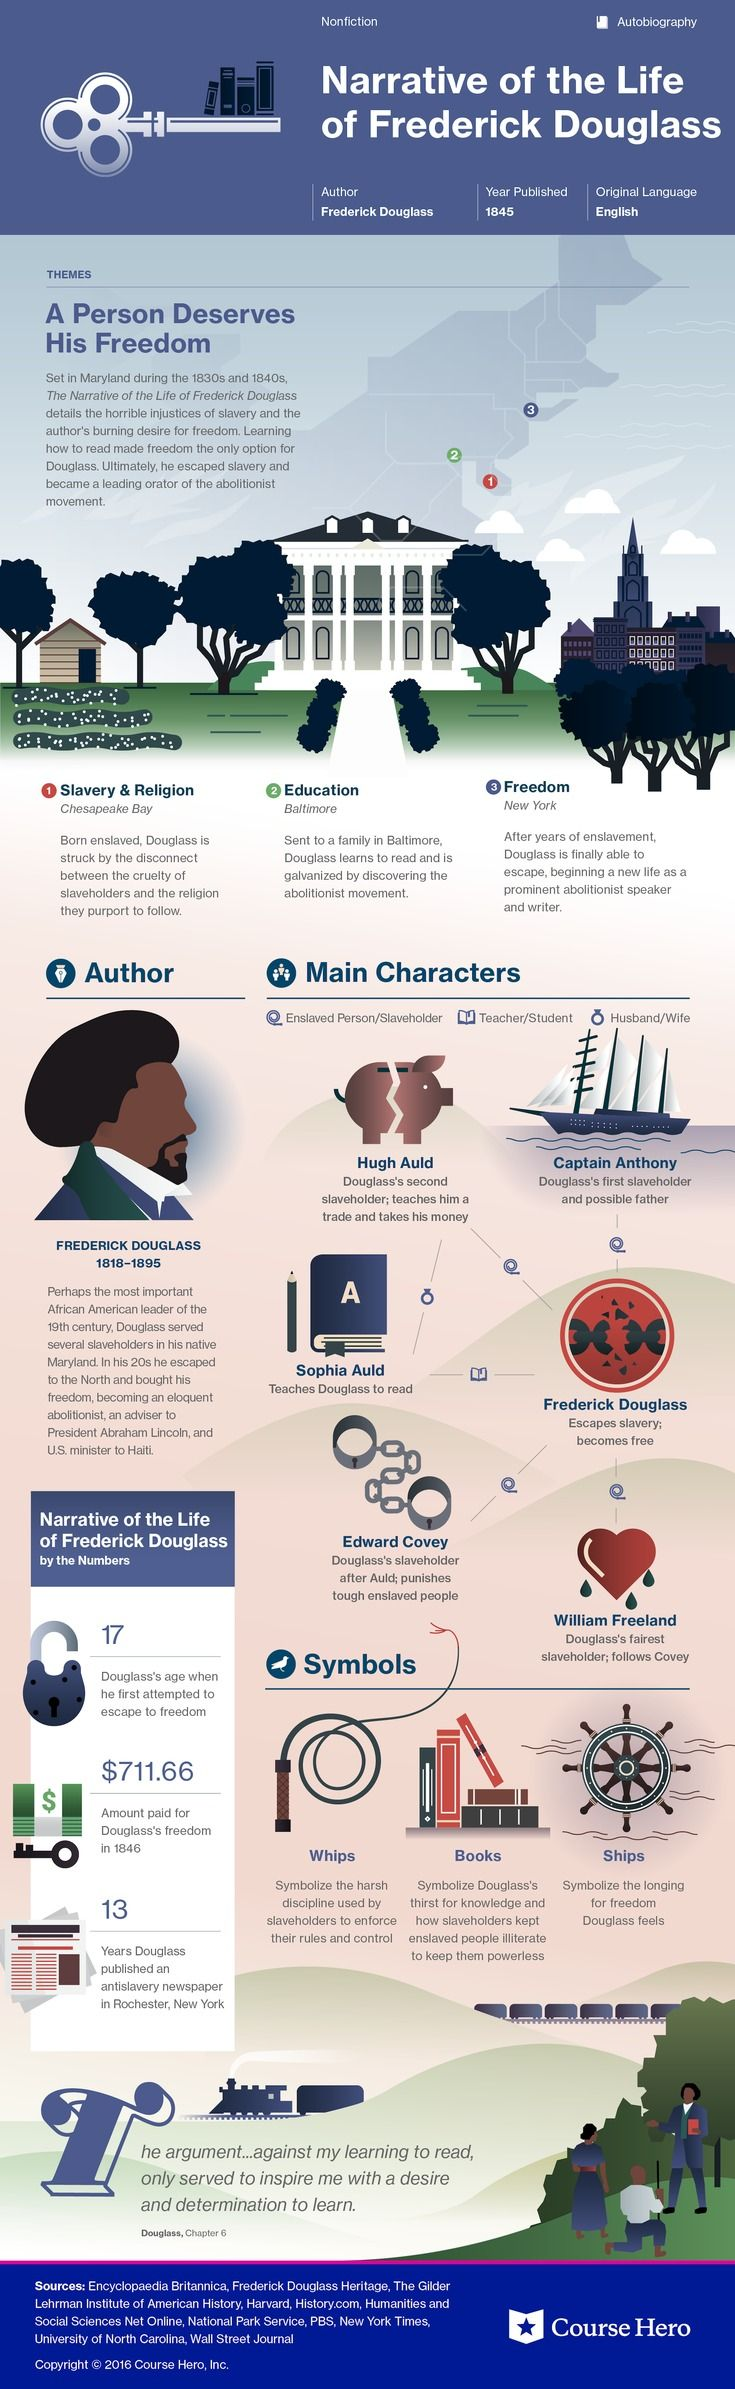 best ideas about frederick douglass narrative frederick douglass s narrative of the life of frederick douglass infographic to help you understand everything about the book visually learn all about the